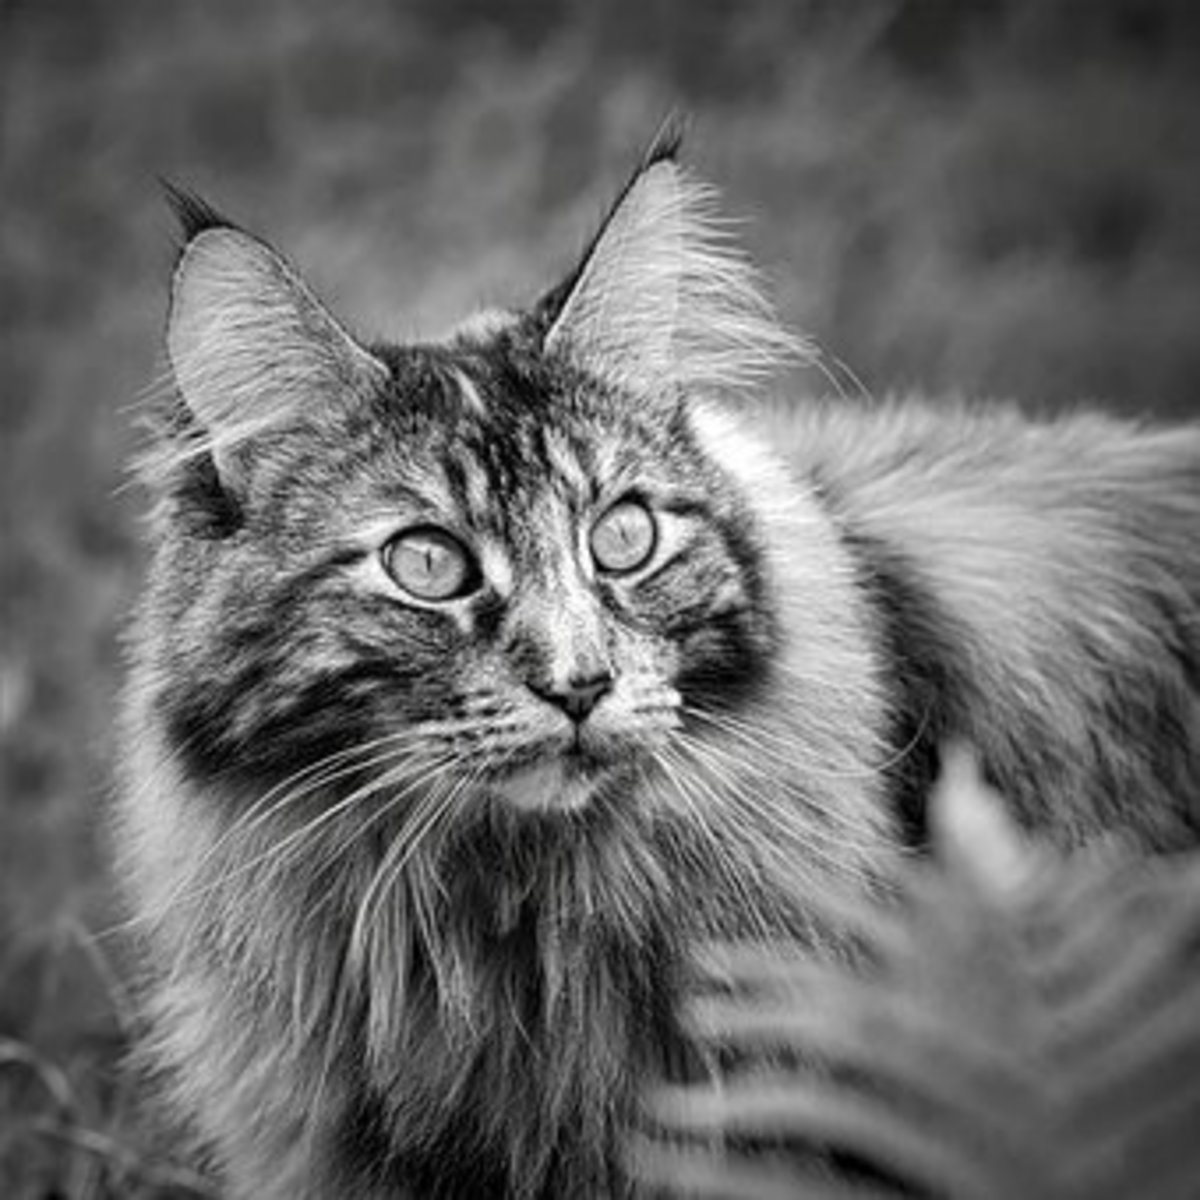 15 Astronomical Names for Maine Coon Cats (From Apollo to Vulcan)